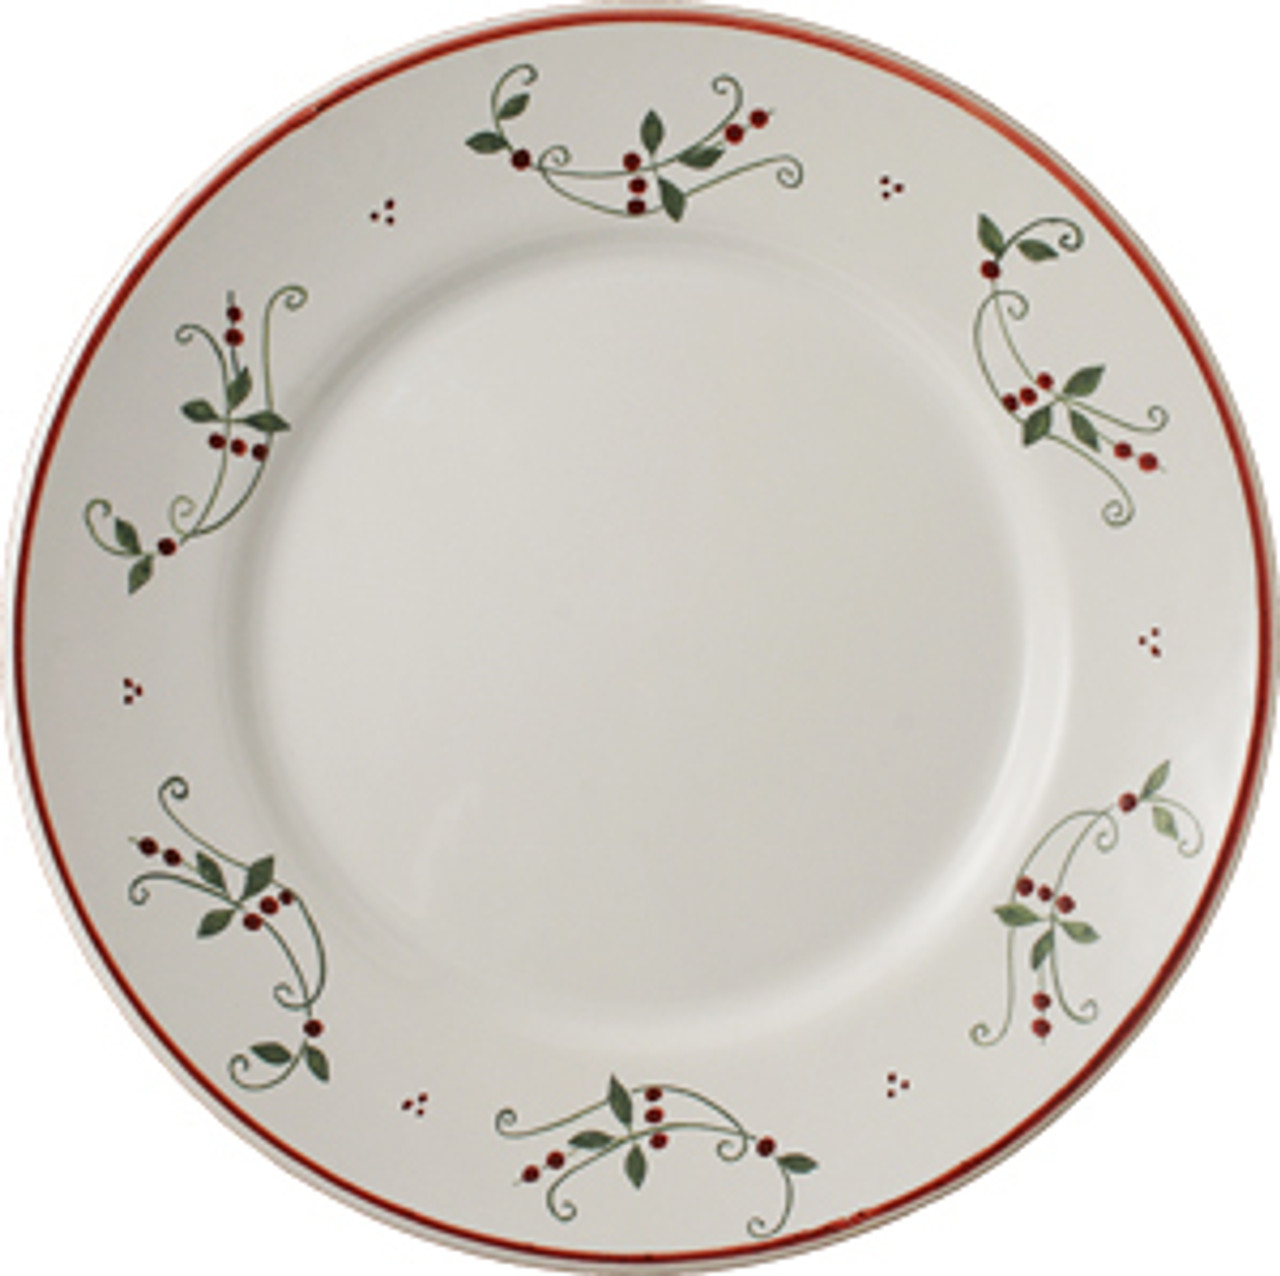 Christmas Plates.Round Plate 11 Inch Plain Garland Decor Spirit Of Christmas